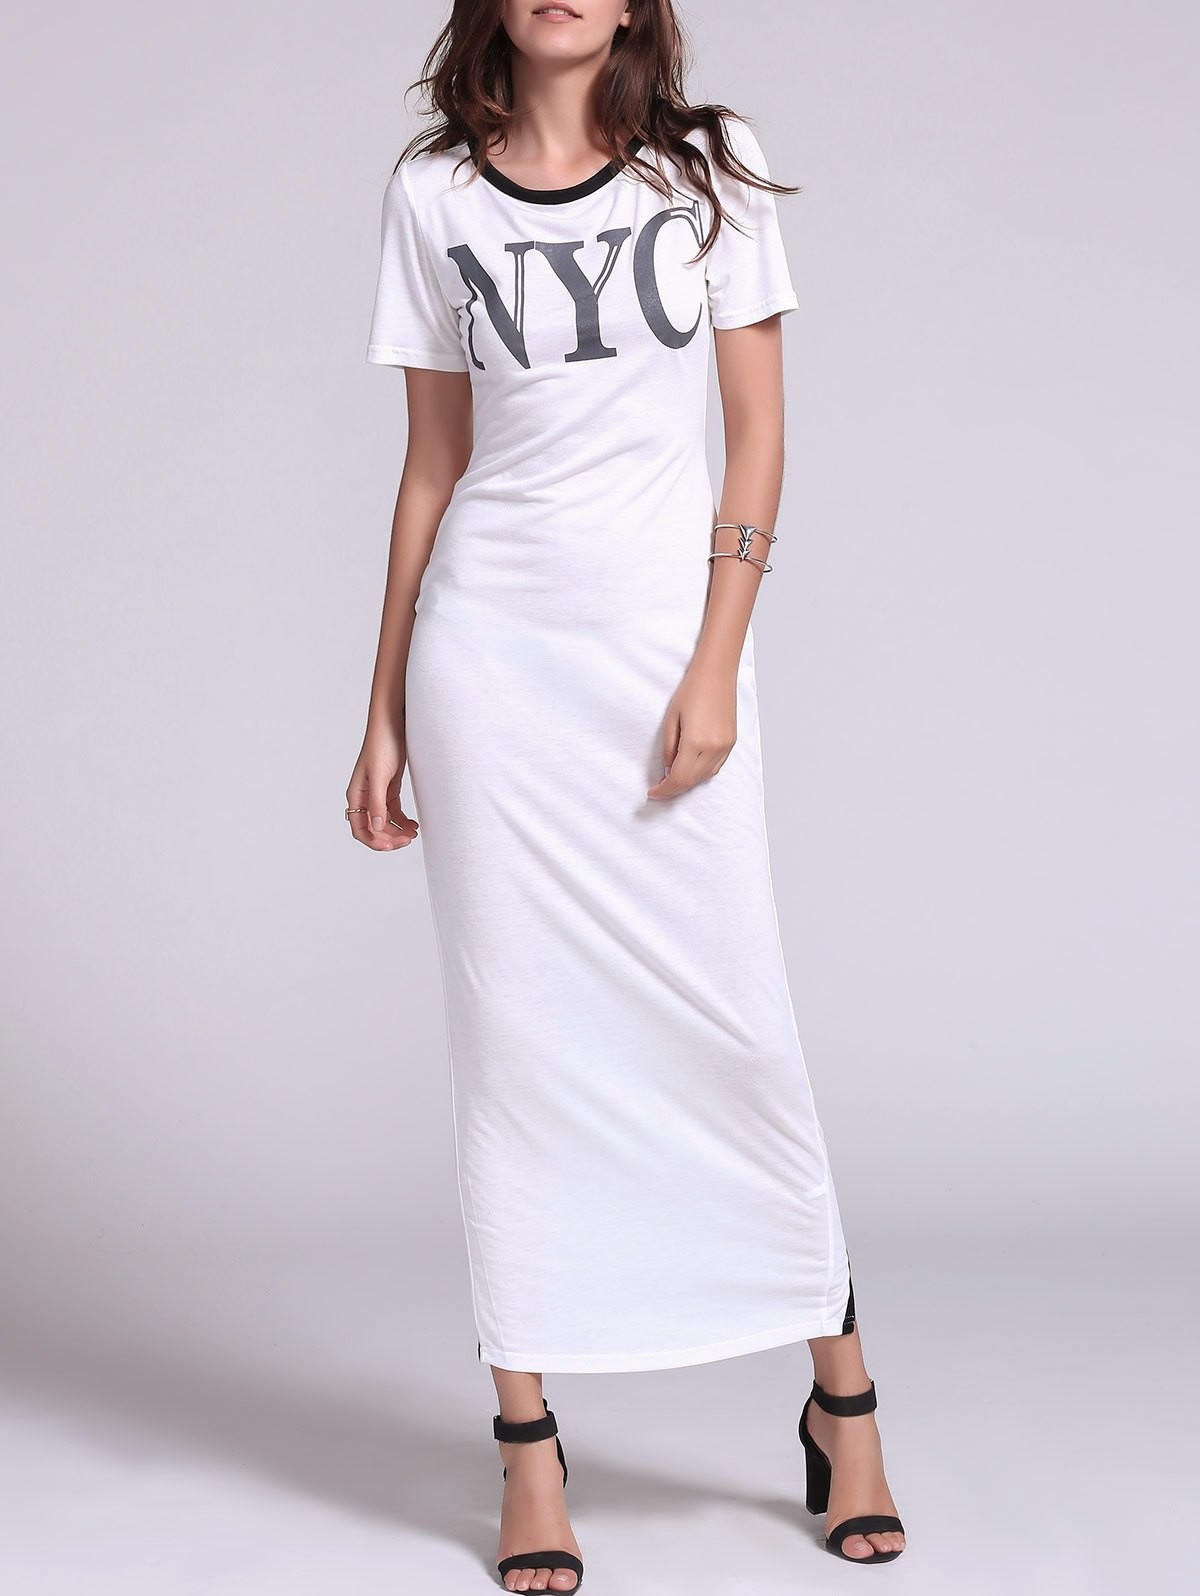 Stylish Split Hollow Out Short Sleeve Dress For Women - WHITE L